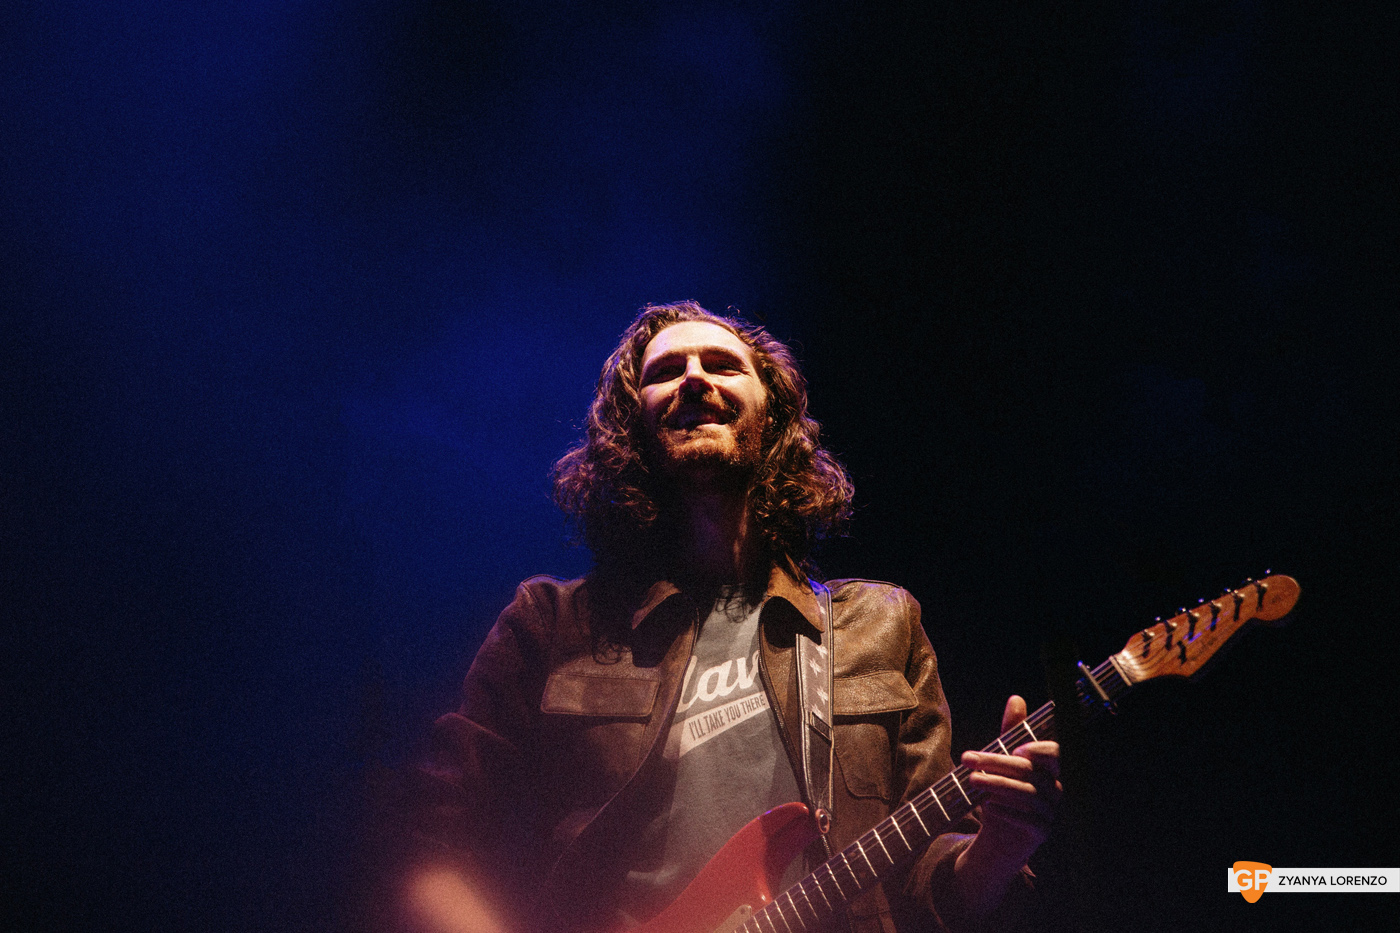 Hozier live at the 3Arena, Dublin. Photographed by Zyanya Lorenzo.